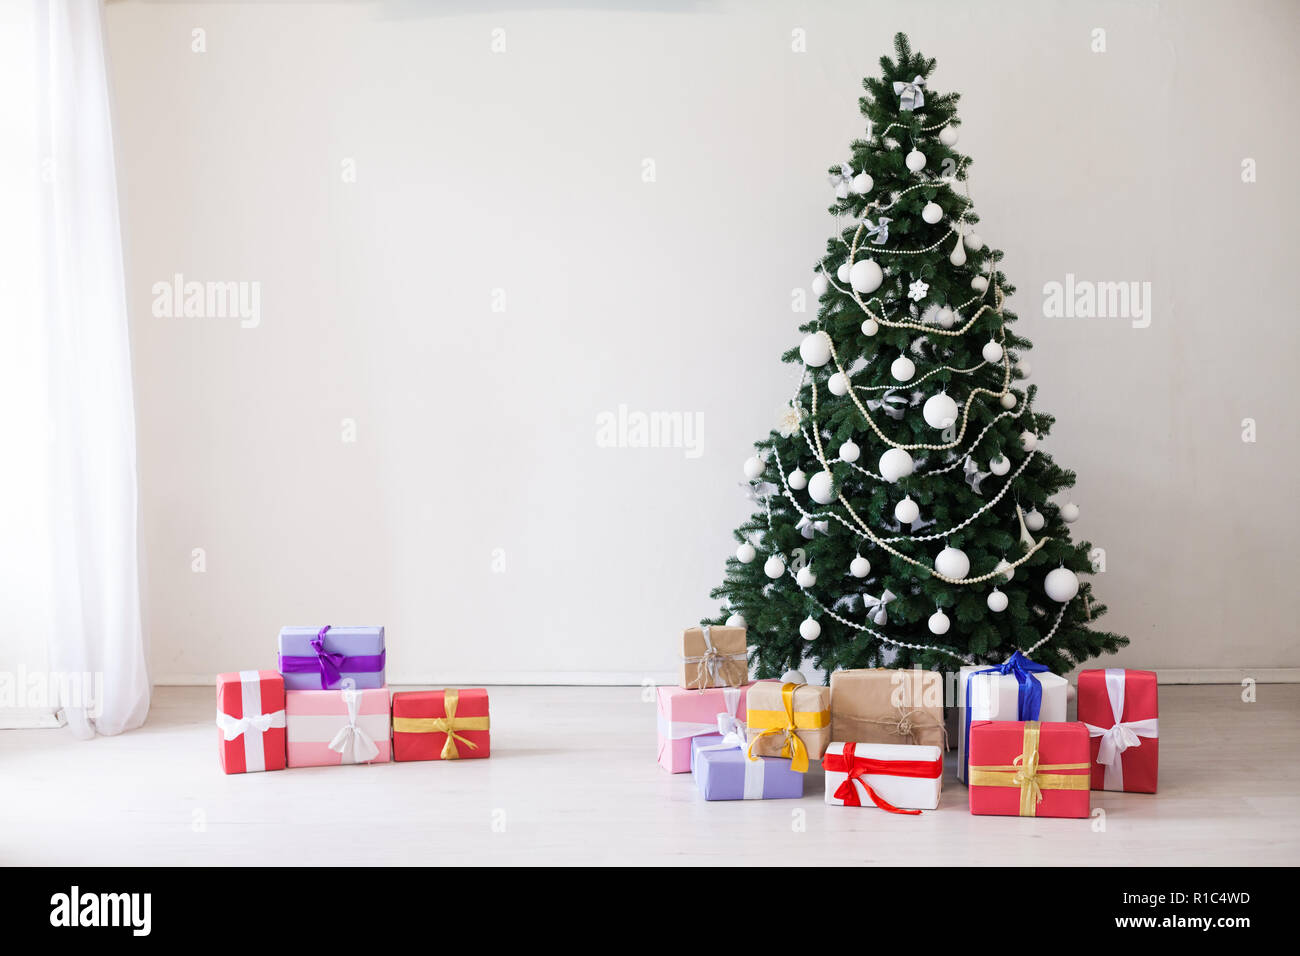 happy new year christmas home interior gifts toys tree winter holidays stock image